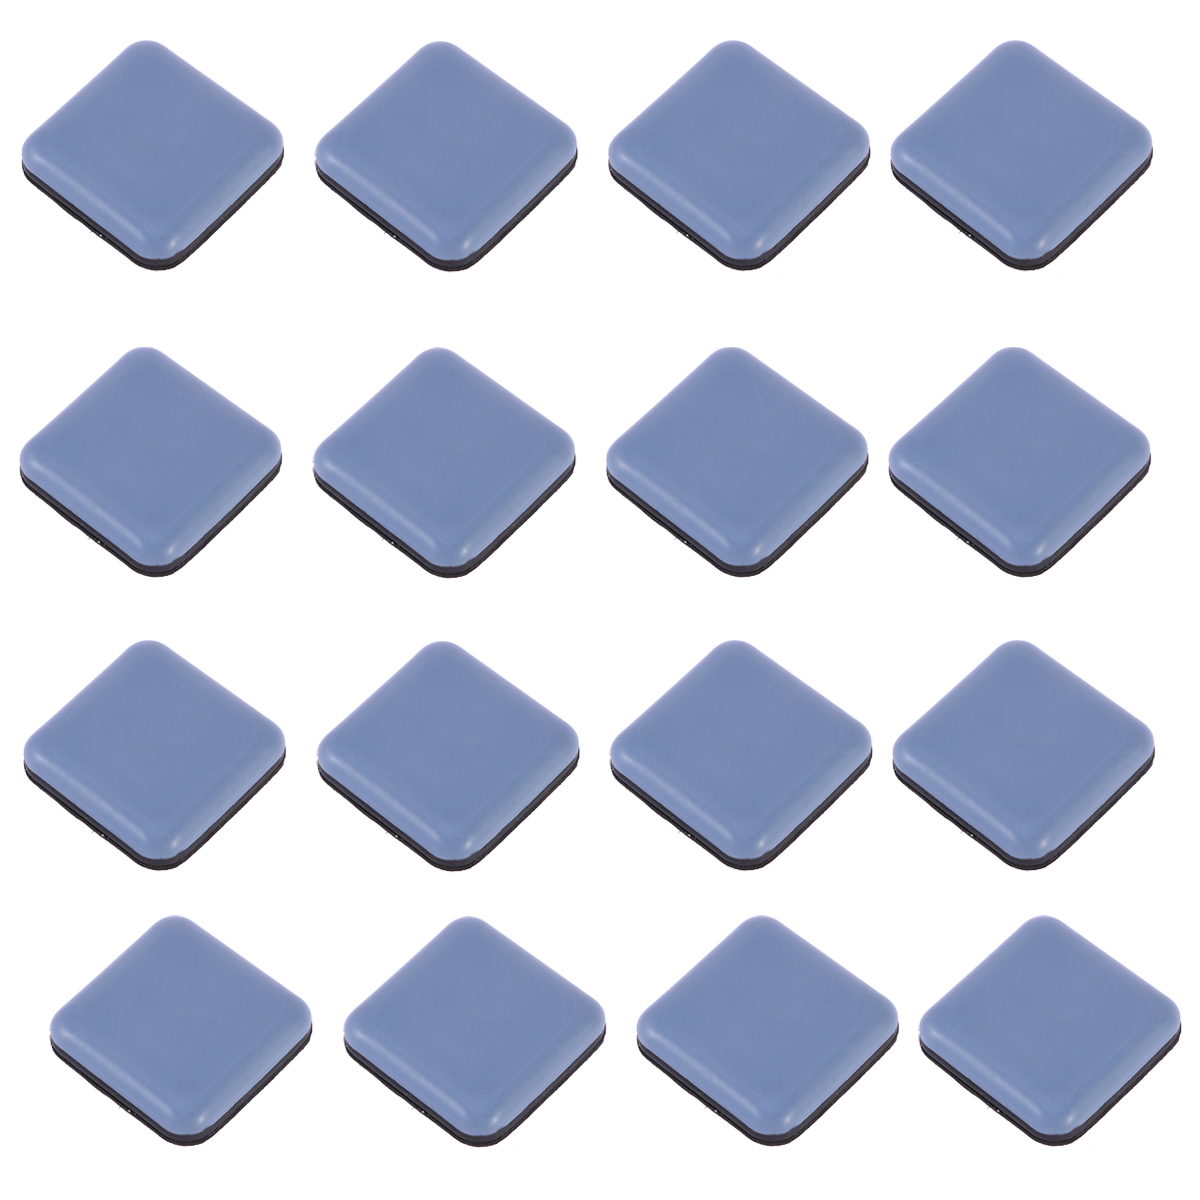 Pack of 16 Easy to Move Thicken Silent Self-adhesive Floor Protectors Pad Feet Cover Leg Bottom for Furniture Chair TablePack of 16 Easy to Move Thicken Silent Self-adhesive Floor Protectors Pad Feet Cover Leg Bottom for Furniture Chair Table